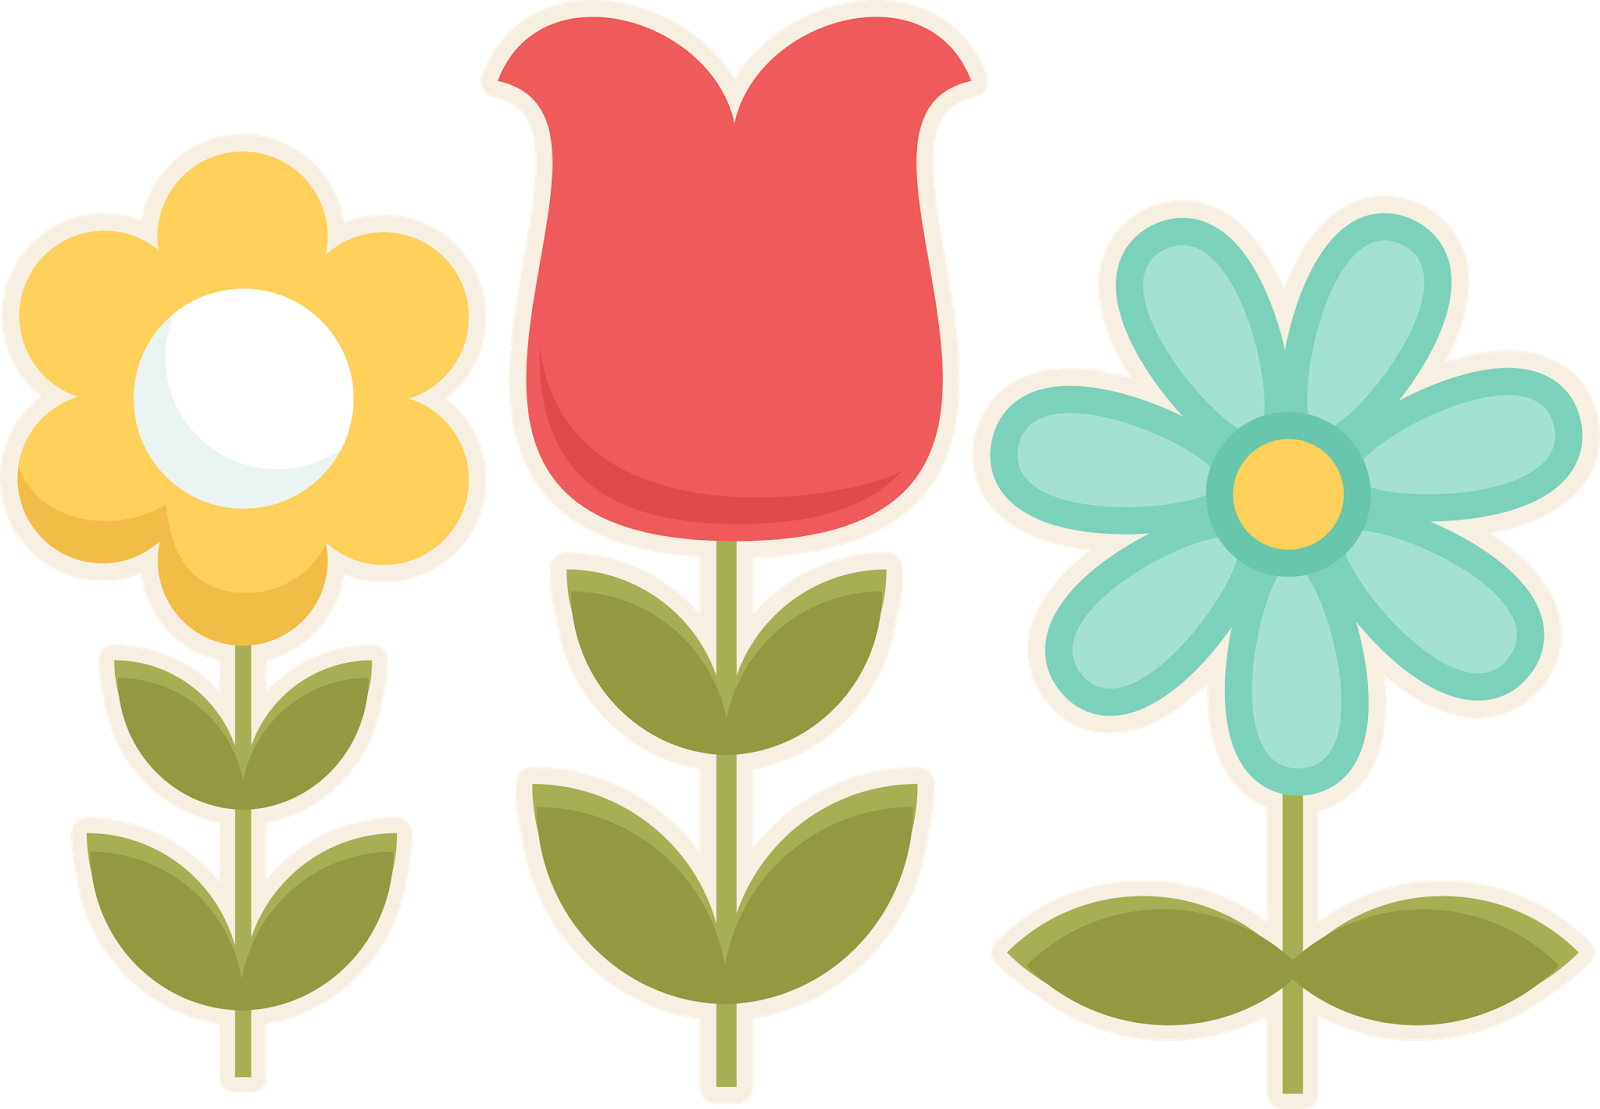 Grilling clipart spring. Flowers clip art pinterest